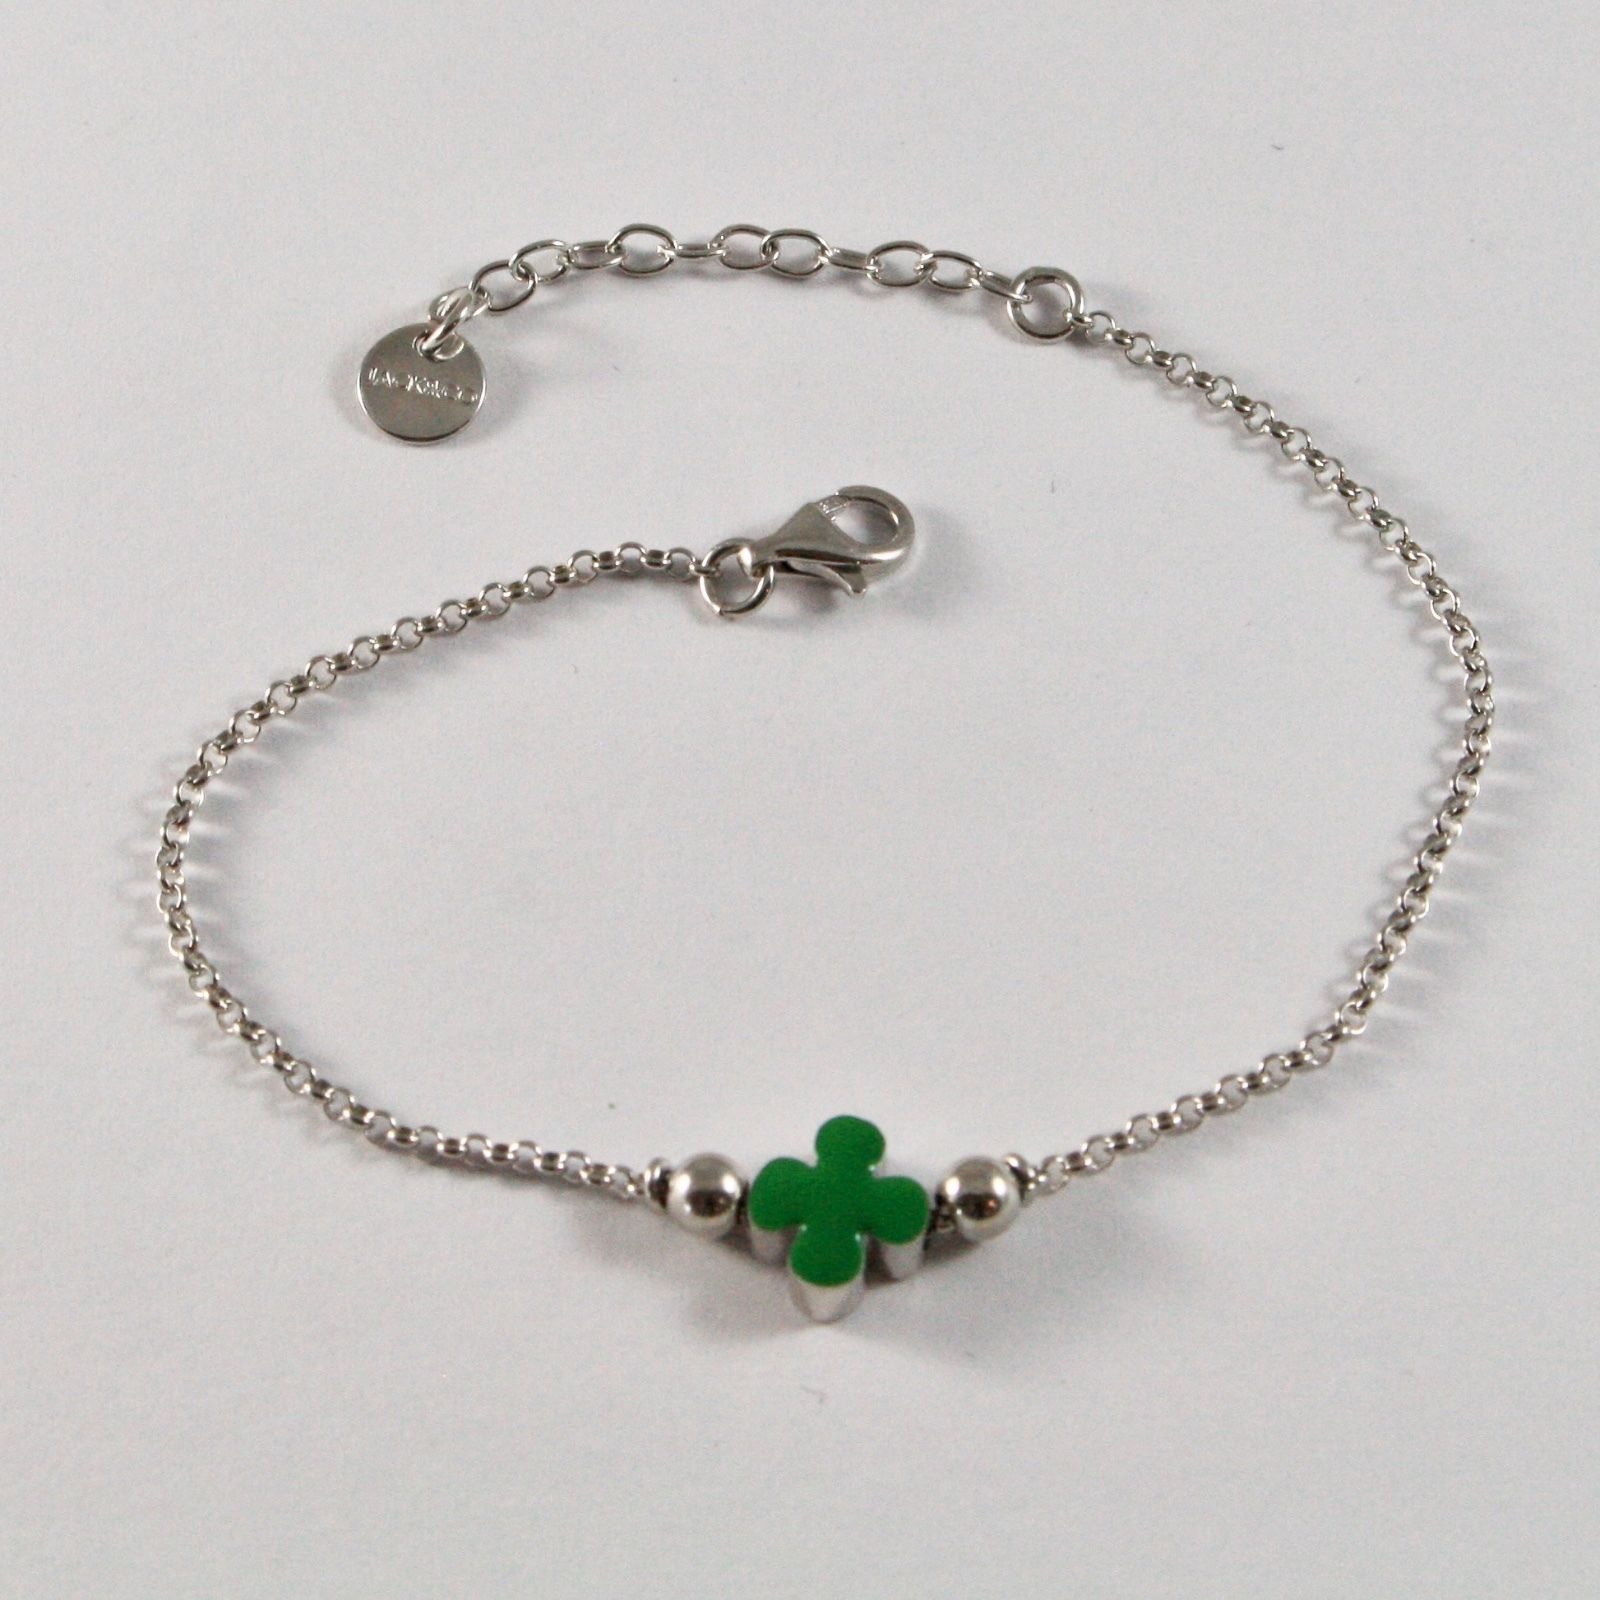 SILVER 925 BRACELET JACK&CO FOUR-LEAF CLOVER GOOD LUCK ENAMELLED JCB0904